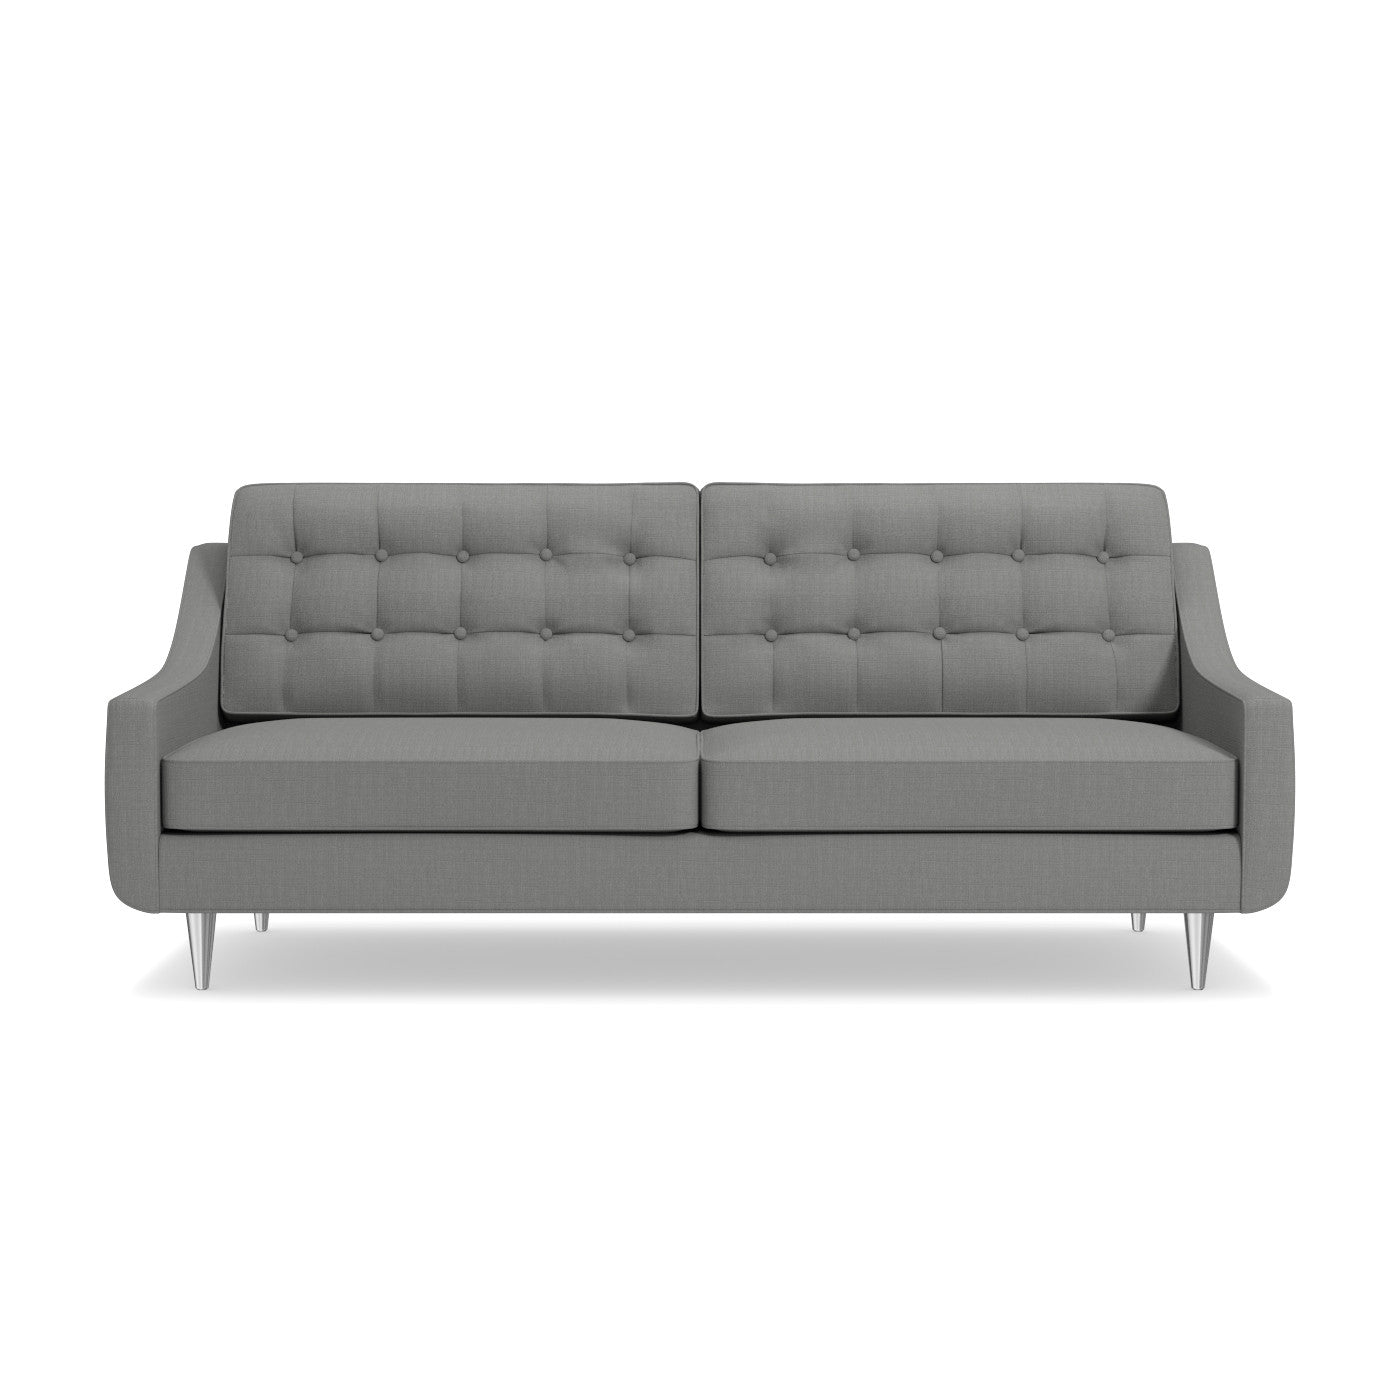 Cloverdale Drive Sofa CHOICE OF FABRICS